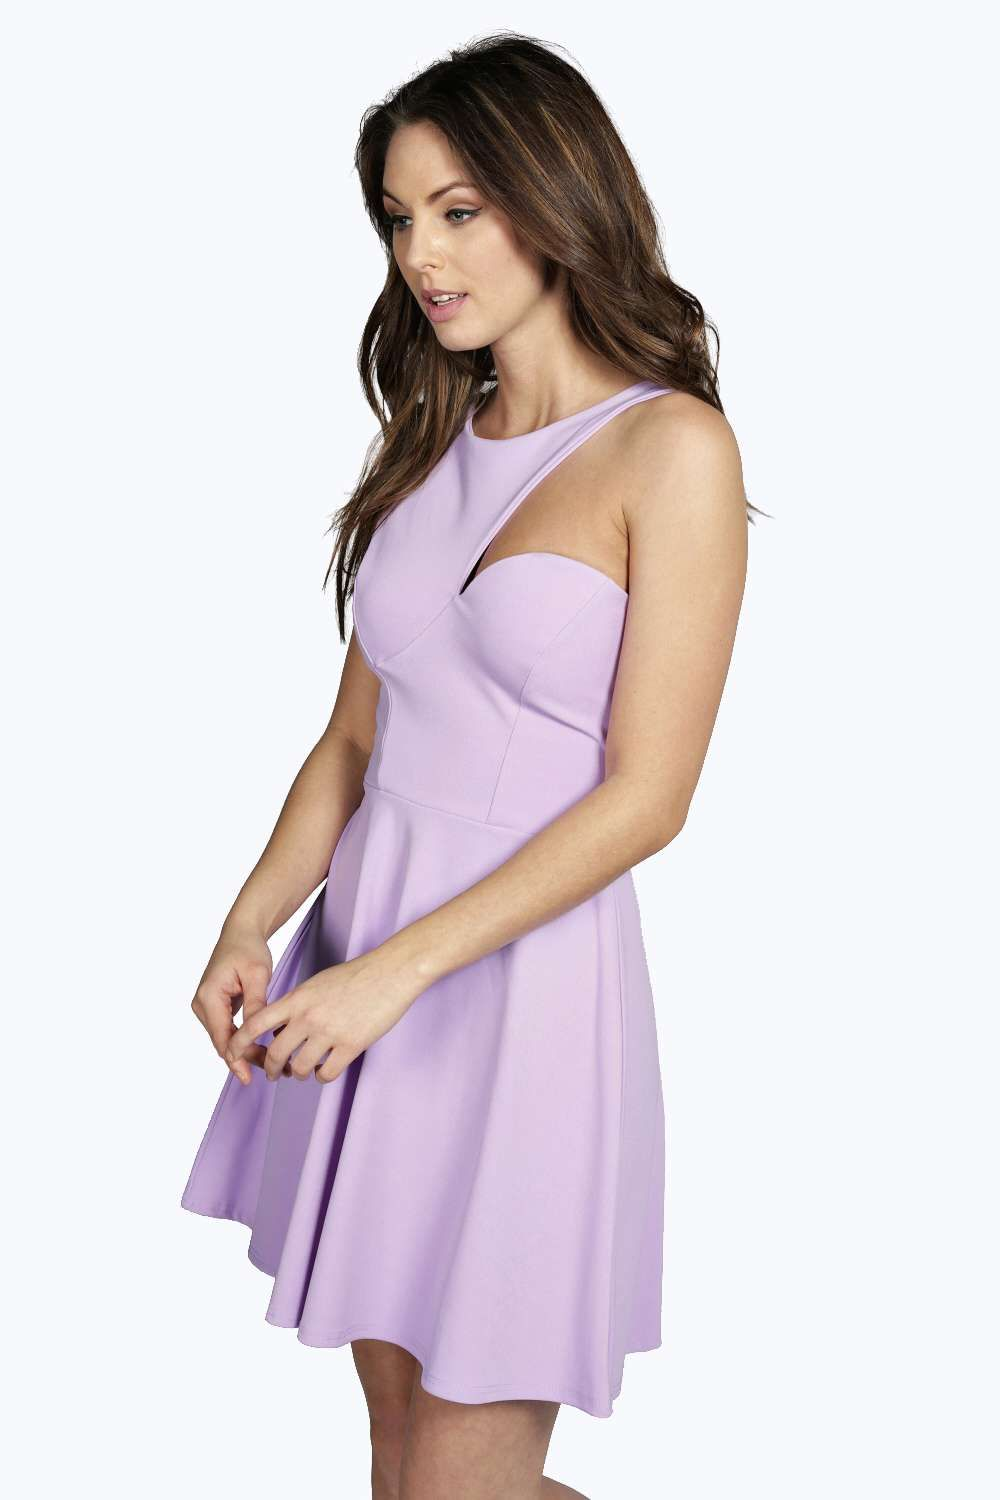 7eed4c1db044 Maisie Cutaway Neckline Skater Dress at boohoo.com | Clothes ...